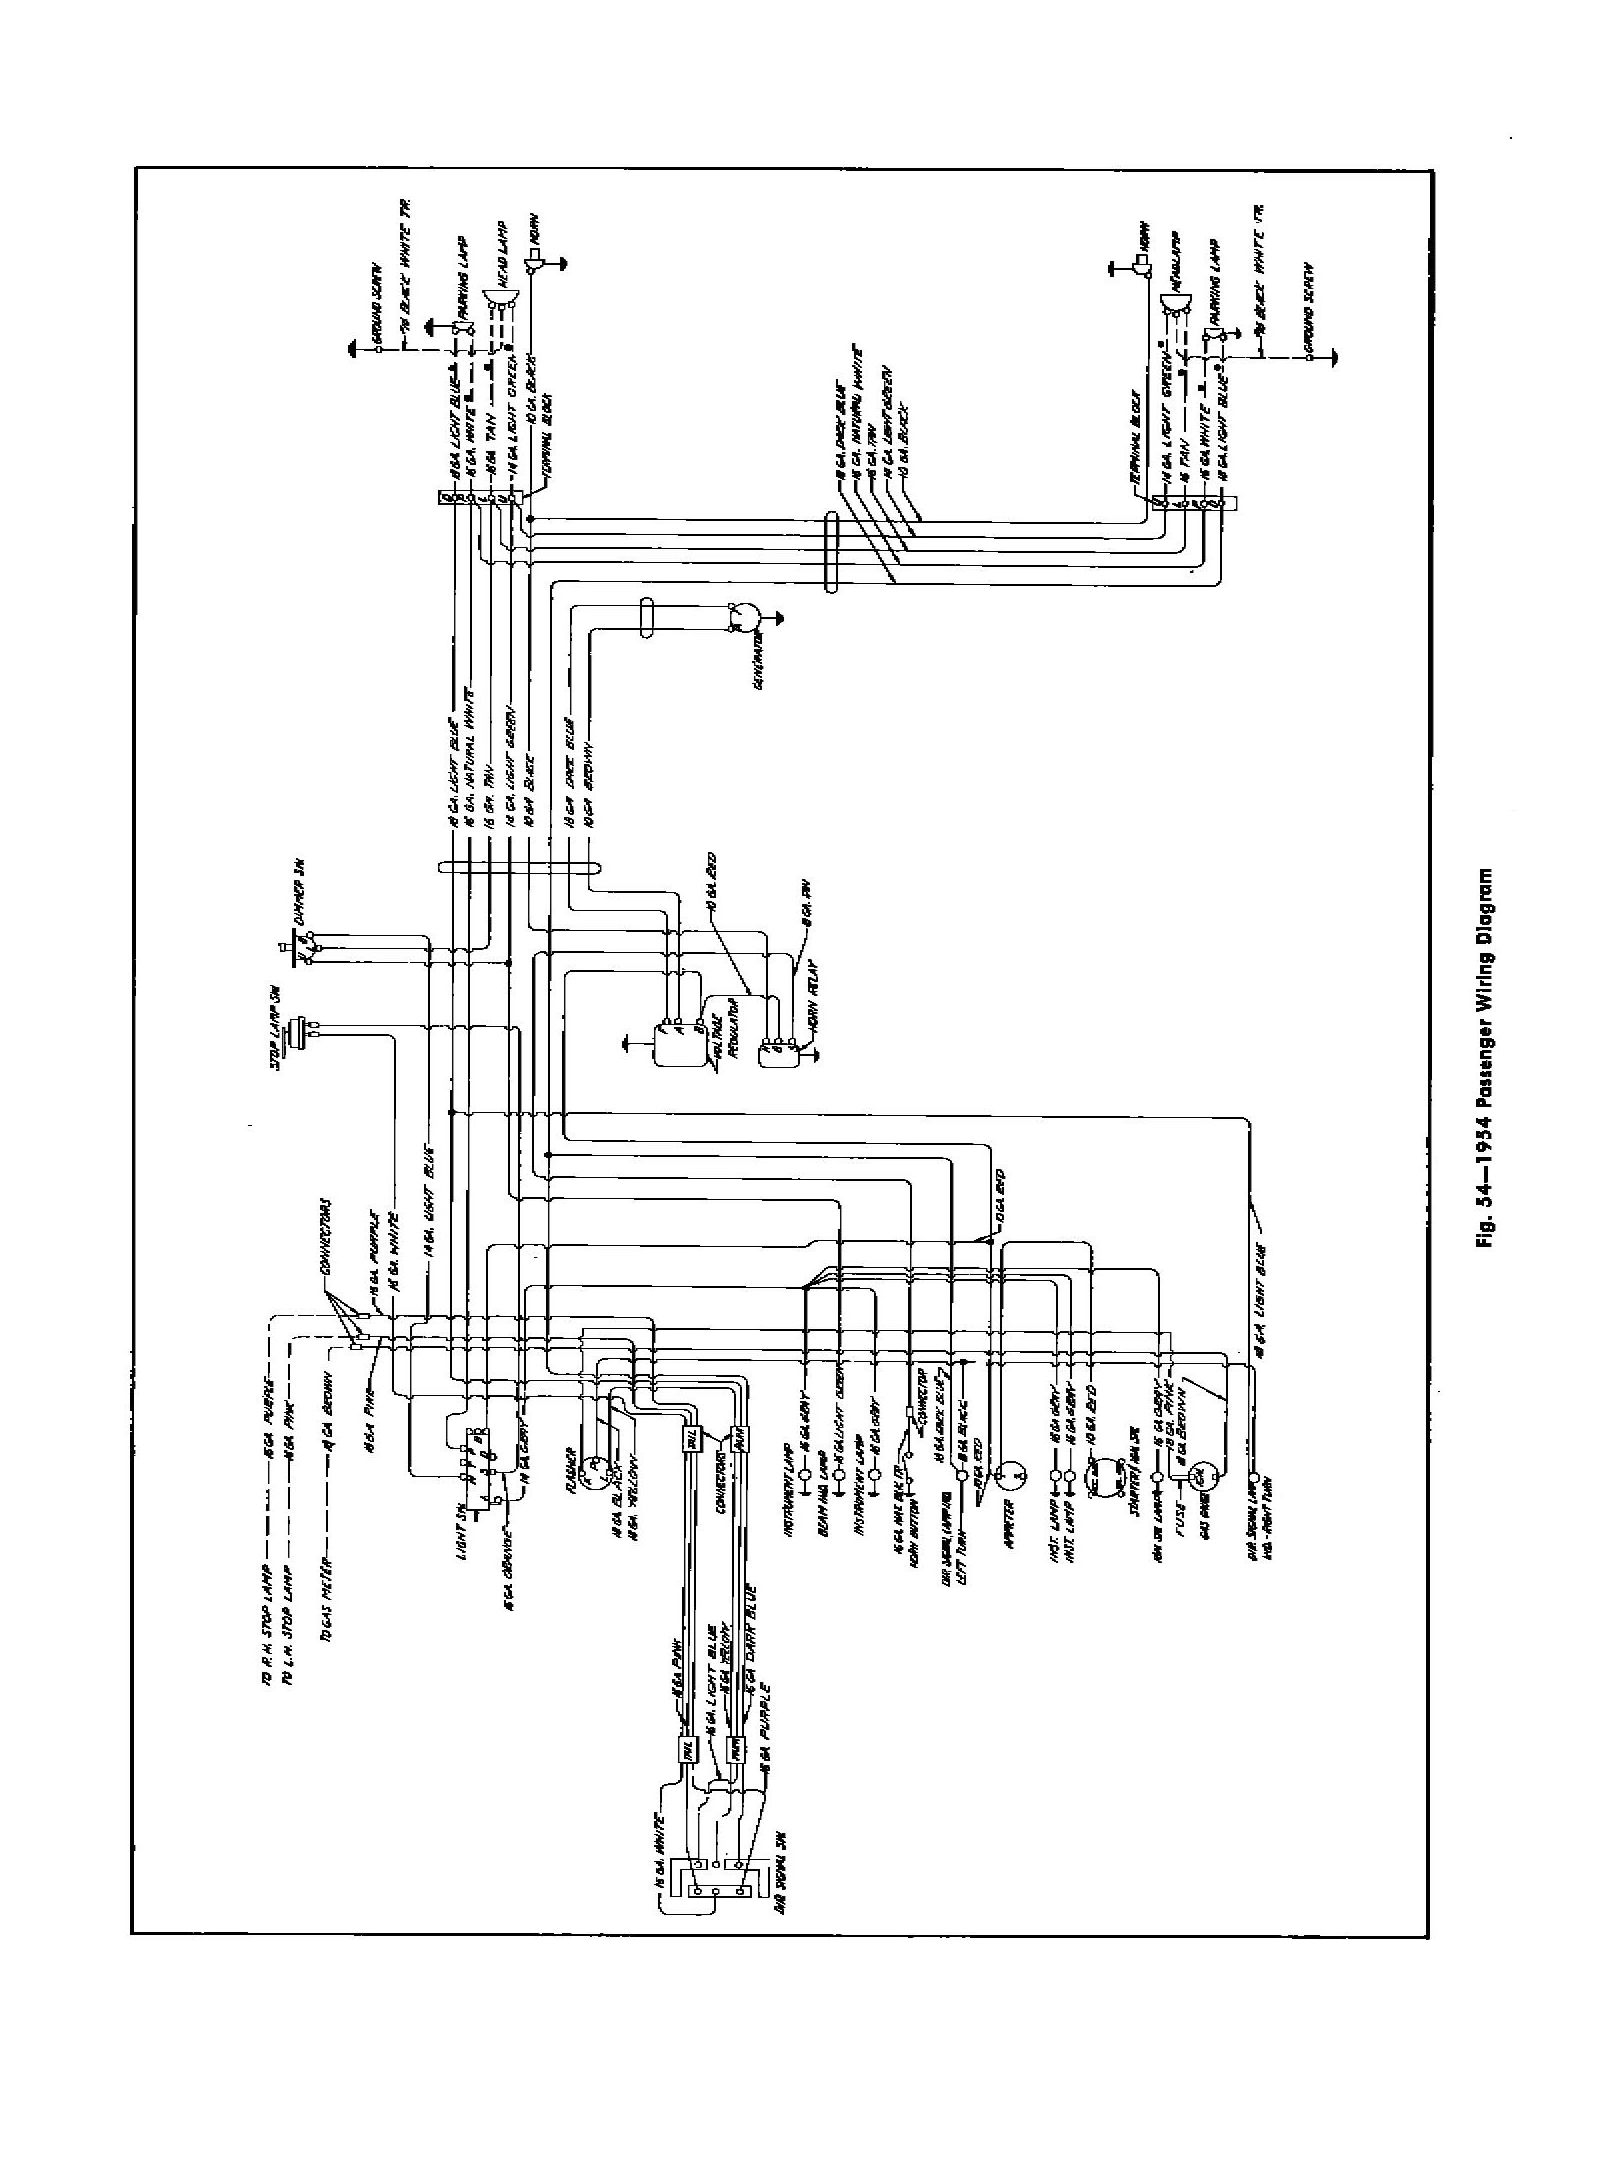 1954 Chevrolet Wiring Diagram For Car on 1957 chevrolet wiring diagram